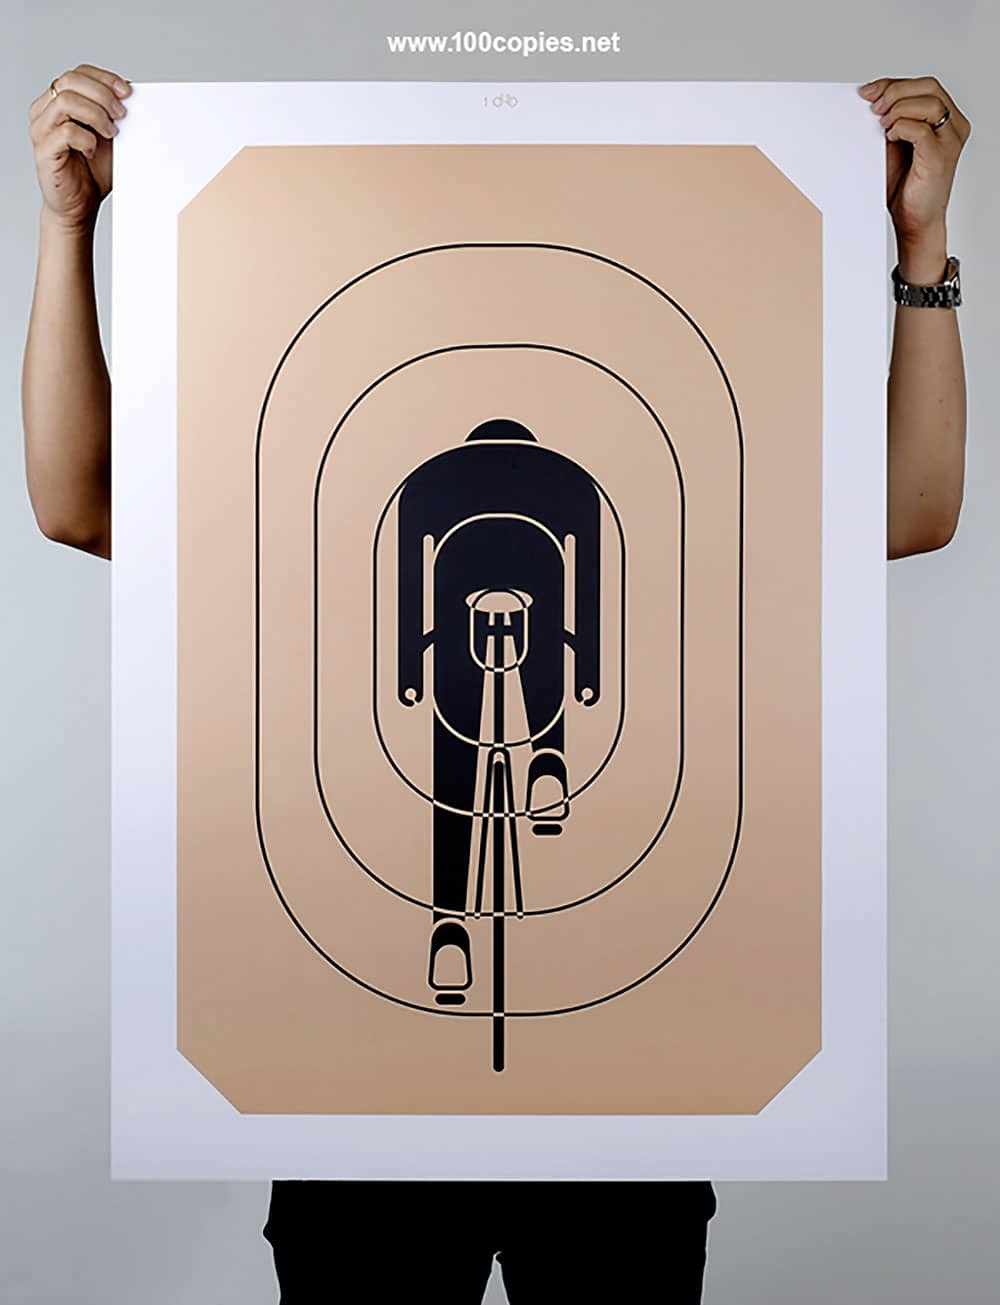 100Copies, le top des affiches bike design !